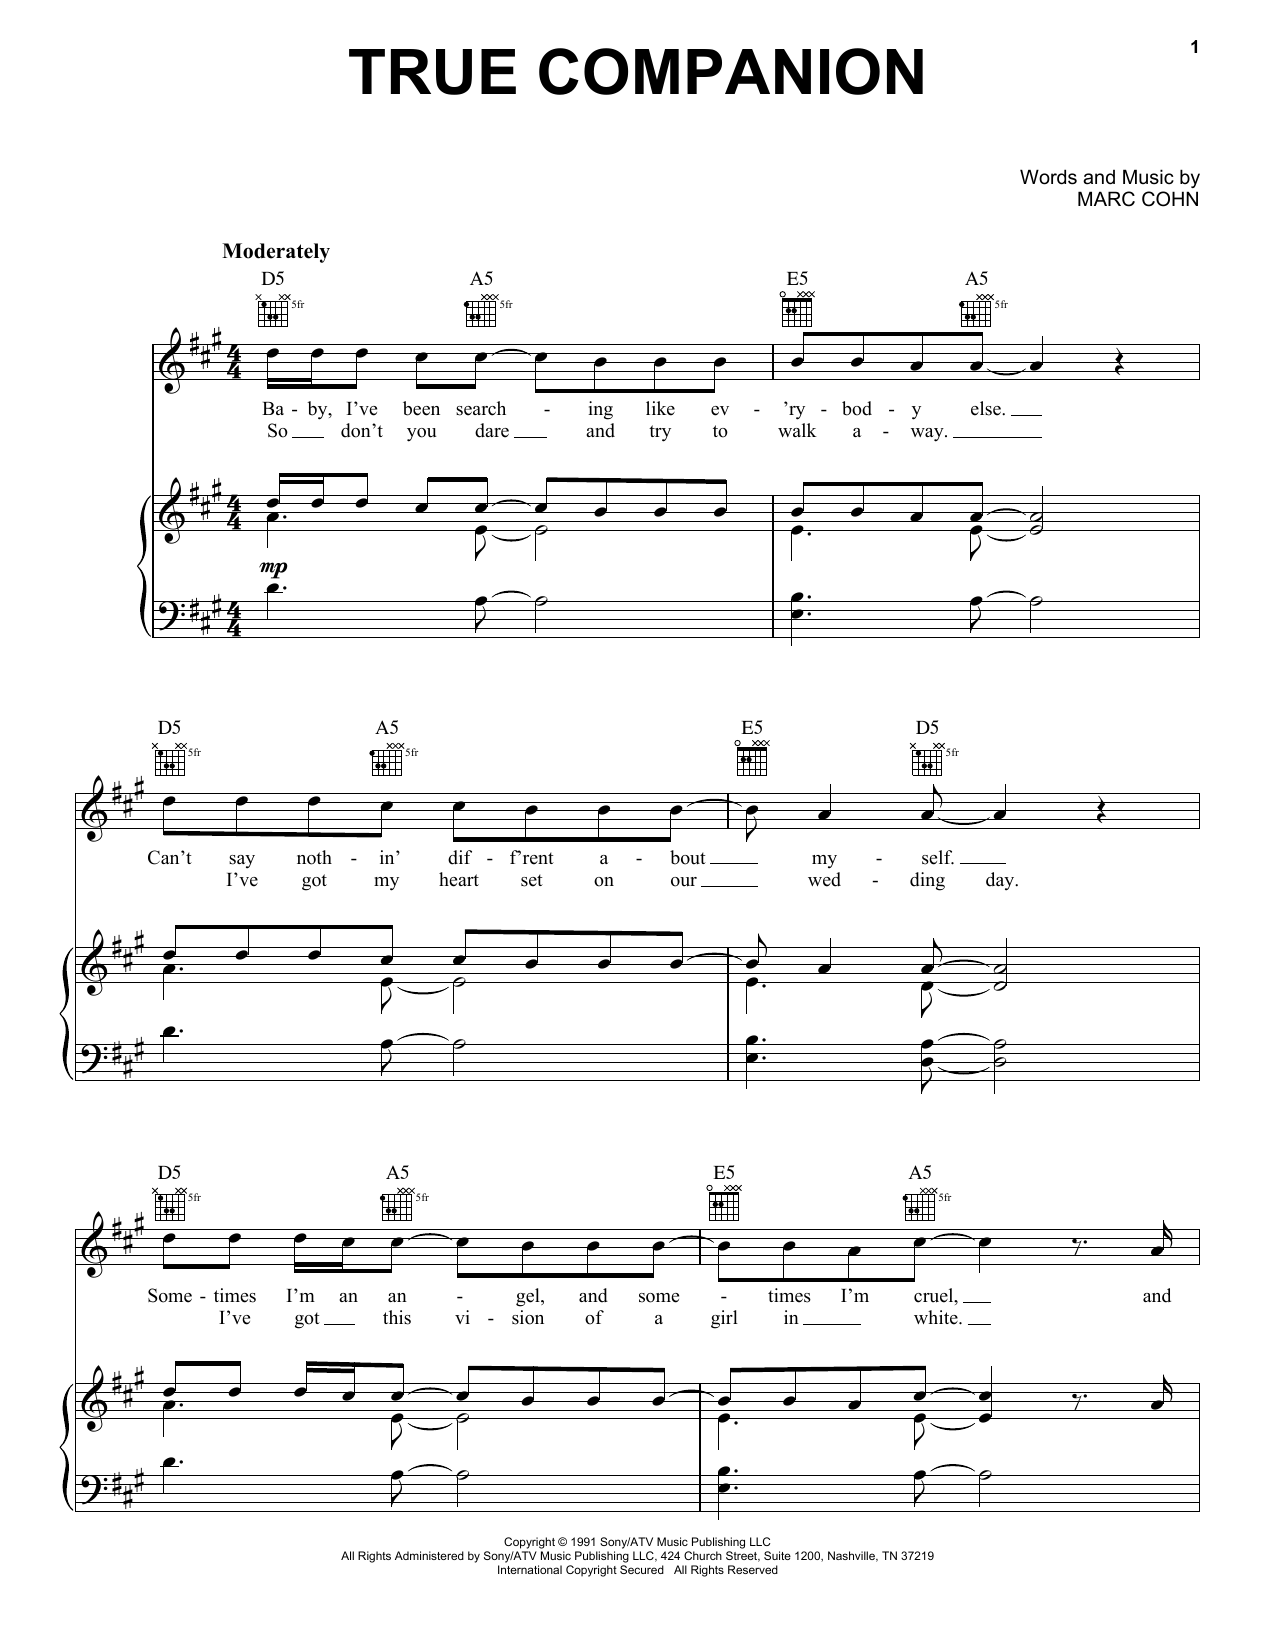 True Companion sheet music for voice, piano or guitar by Marc Cohn